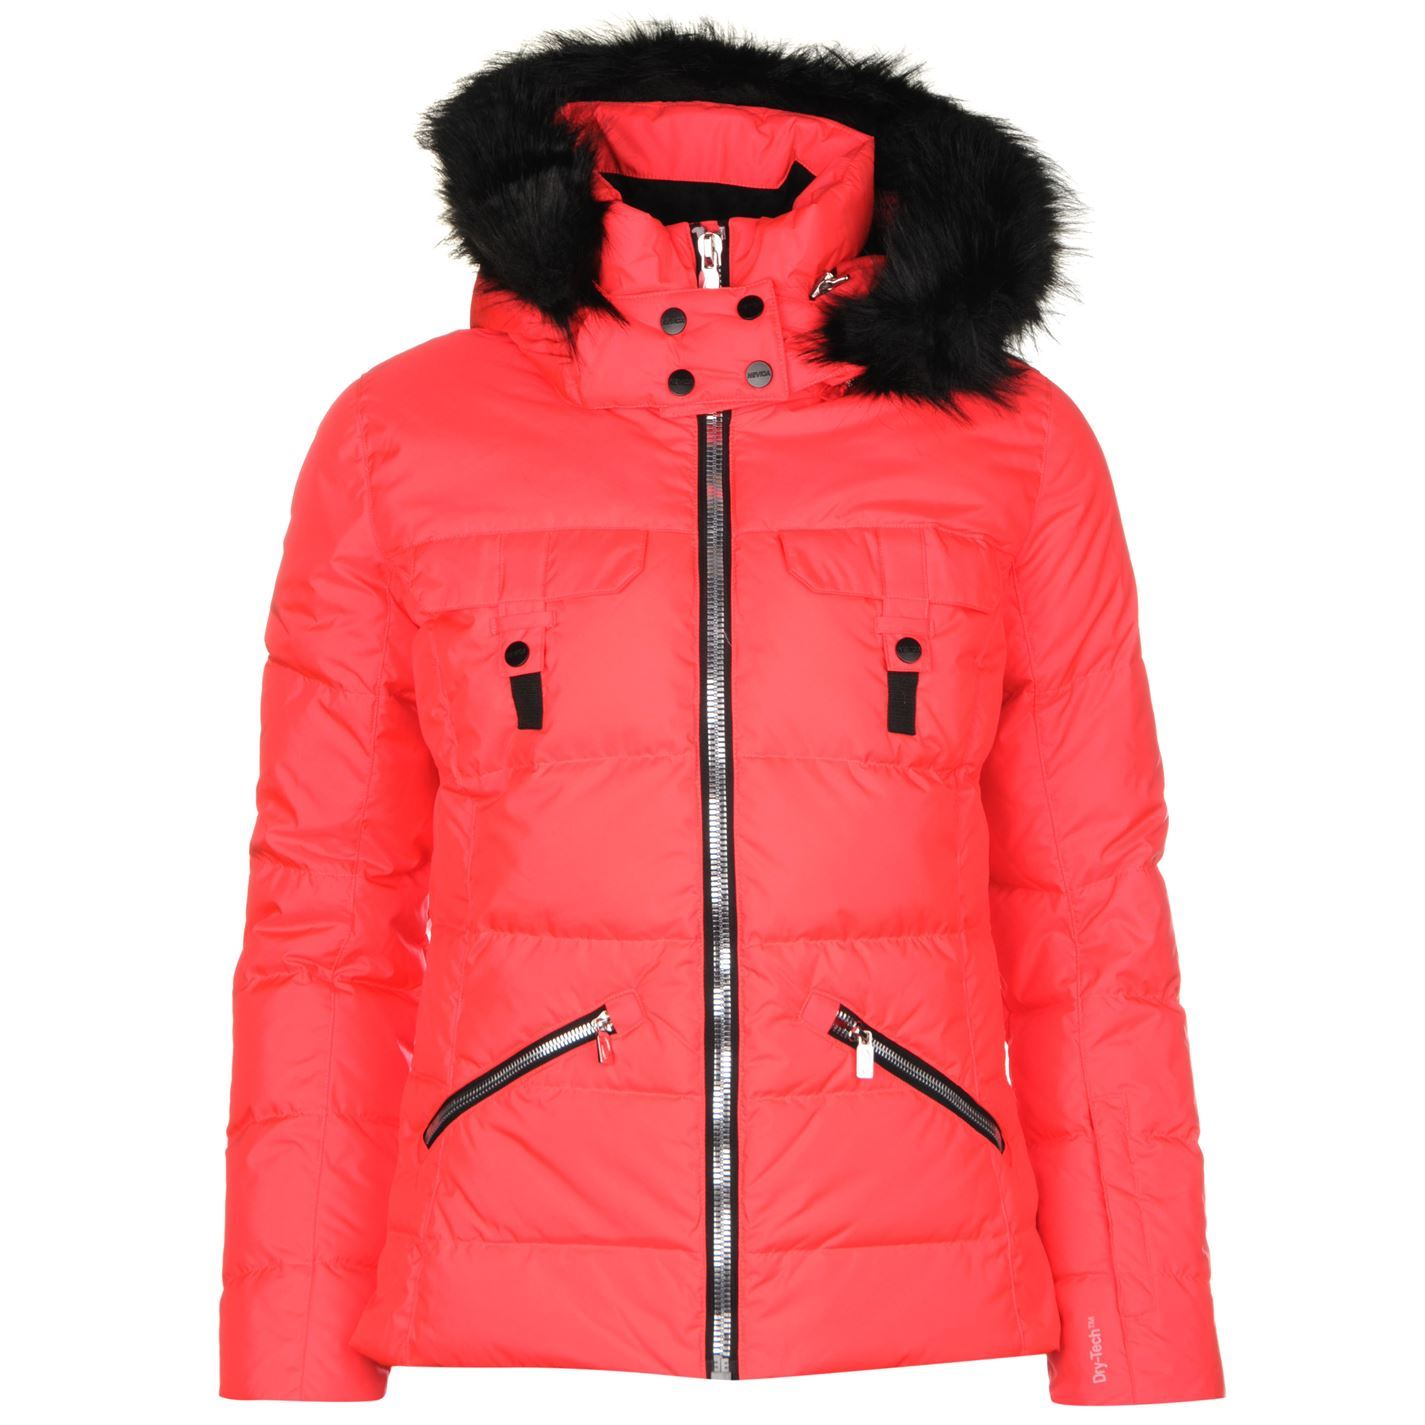 Shop the best selection of women's ski jackets at abpclan.gq, where you'll find premium outdoor gear and clothing and experts to guide you through selection.